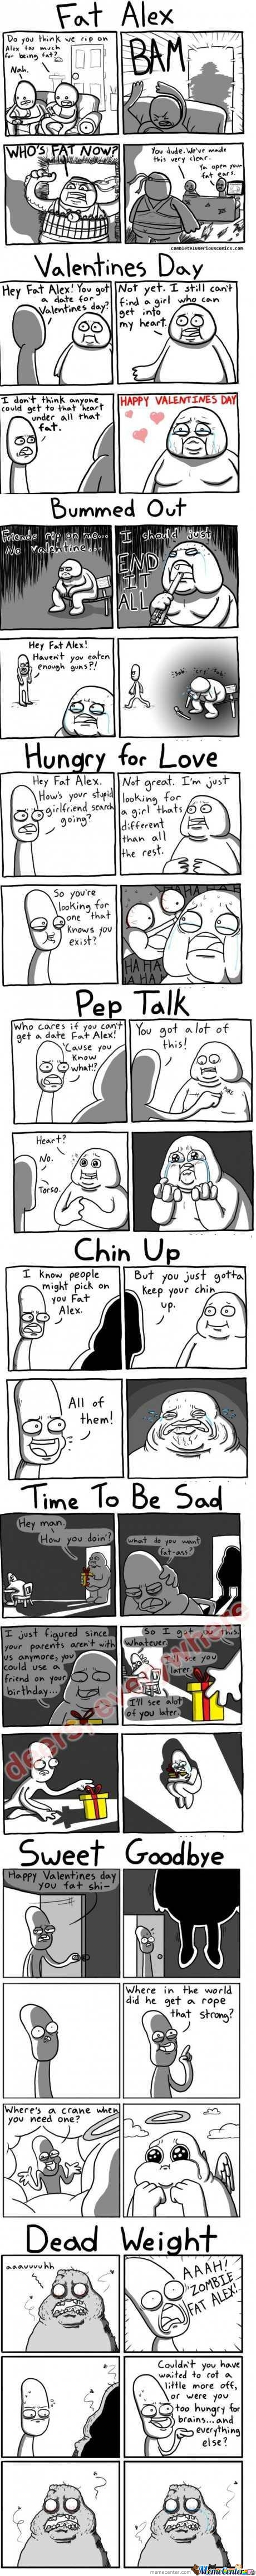 Just An Awsome Comic That I Found On Some Site